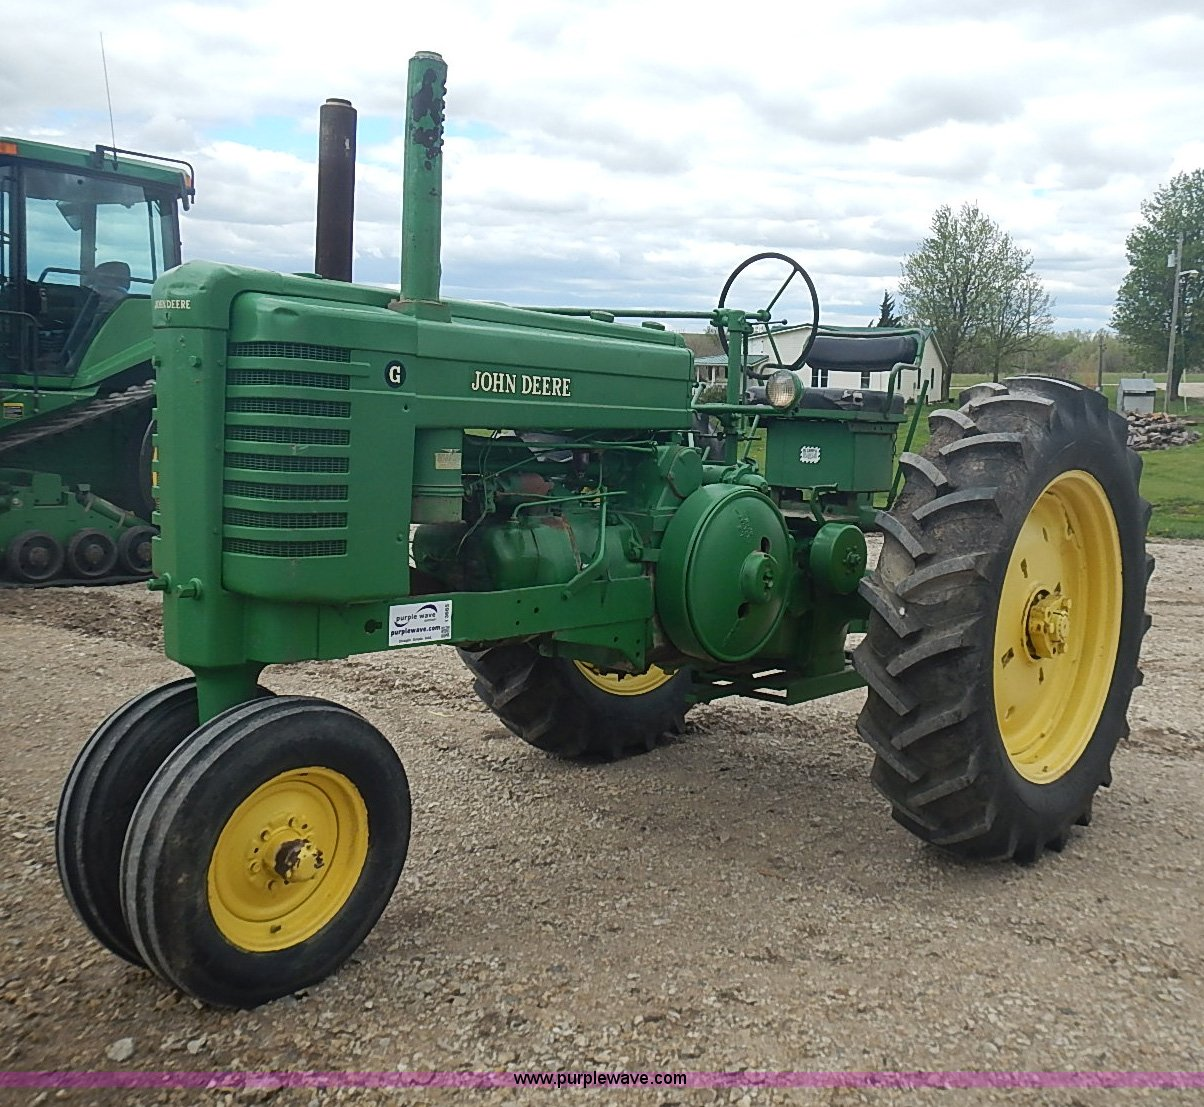 john deere g tractor for sale 2001 chevy malibu radio wiring diagram 1947 item i3665 sold may 28 ag equ in kansas